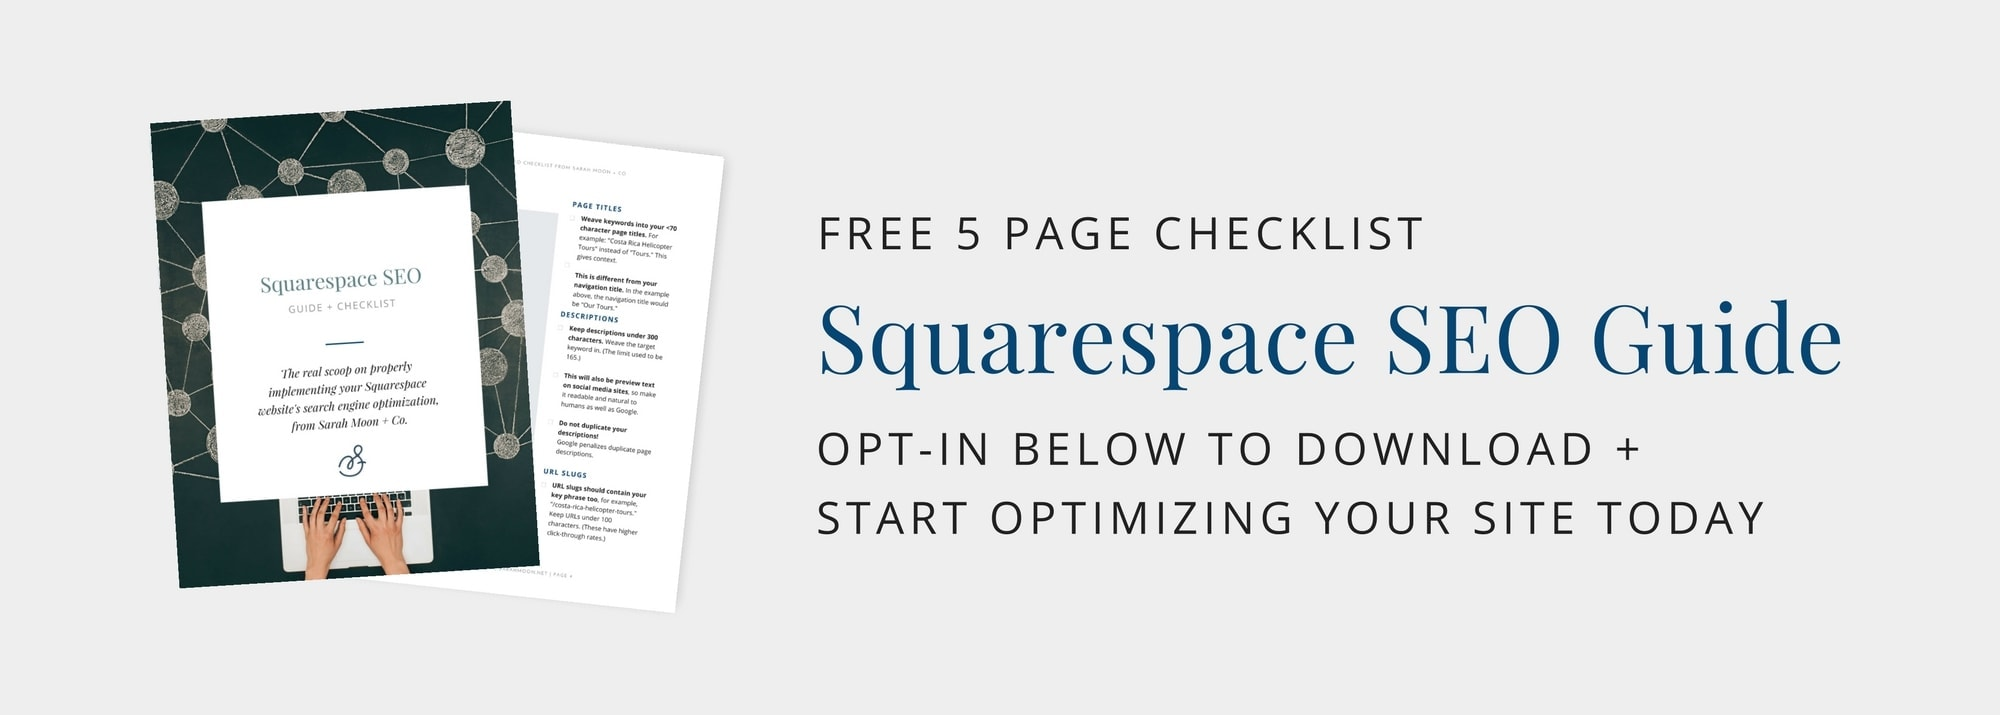 Download your free Squarespace SEO guidebook from an official Squarespace Specialist.